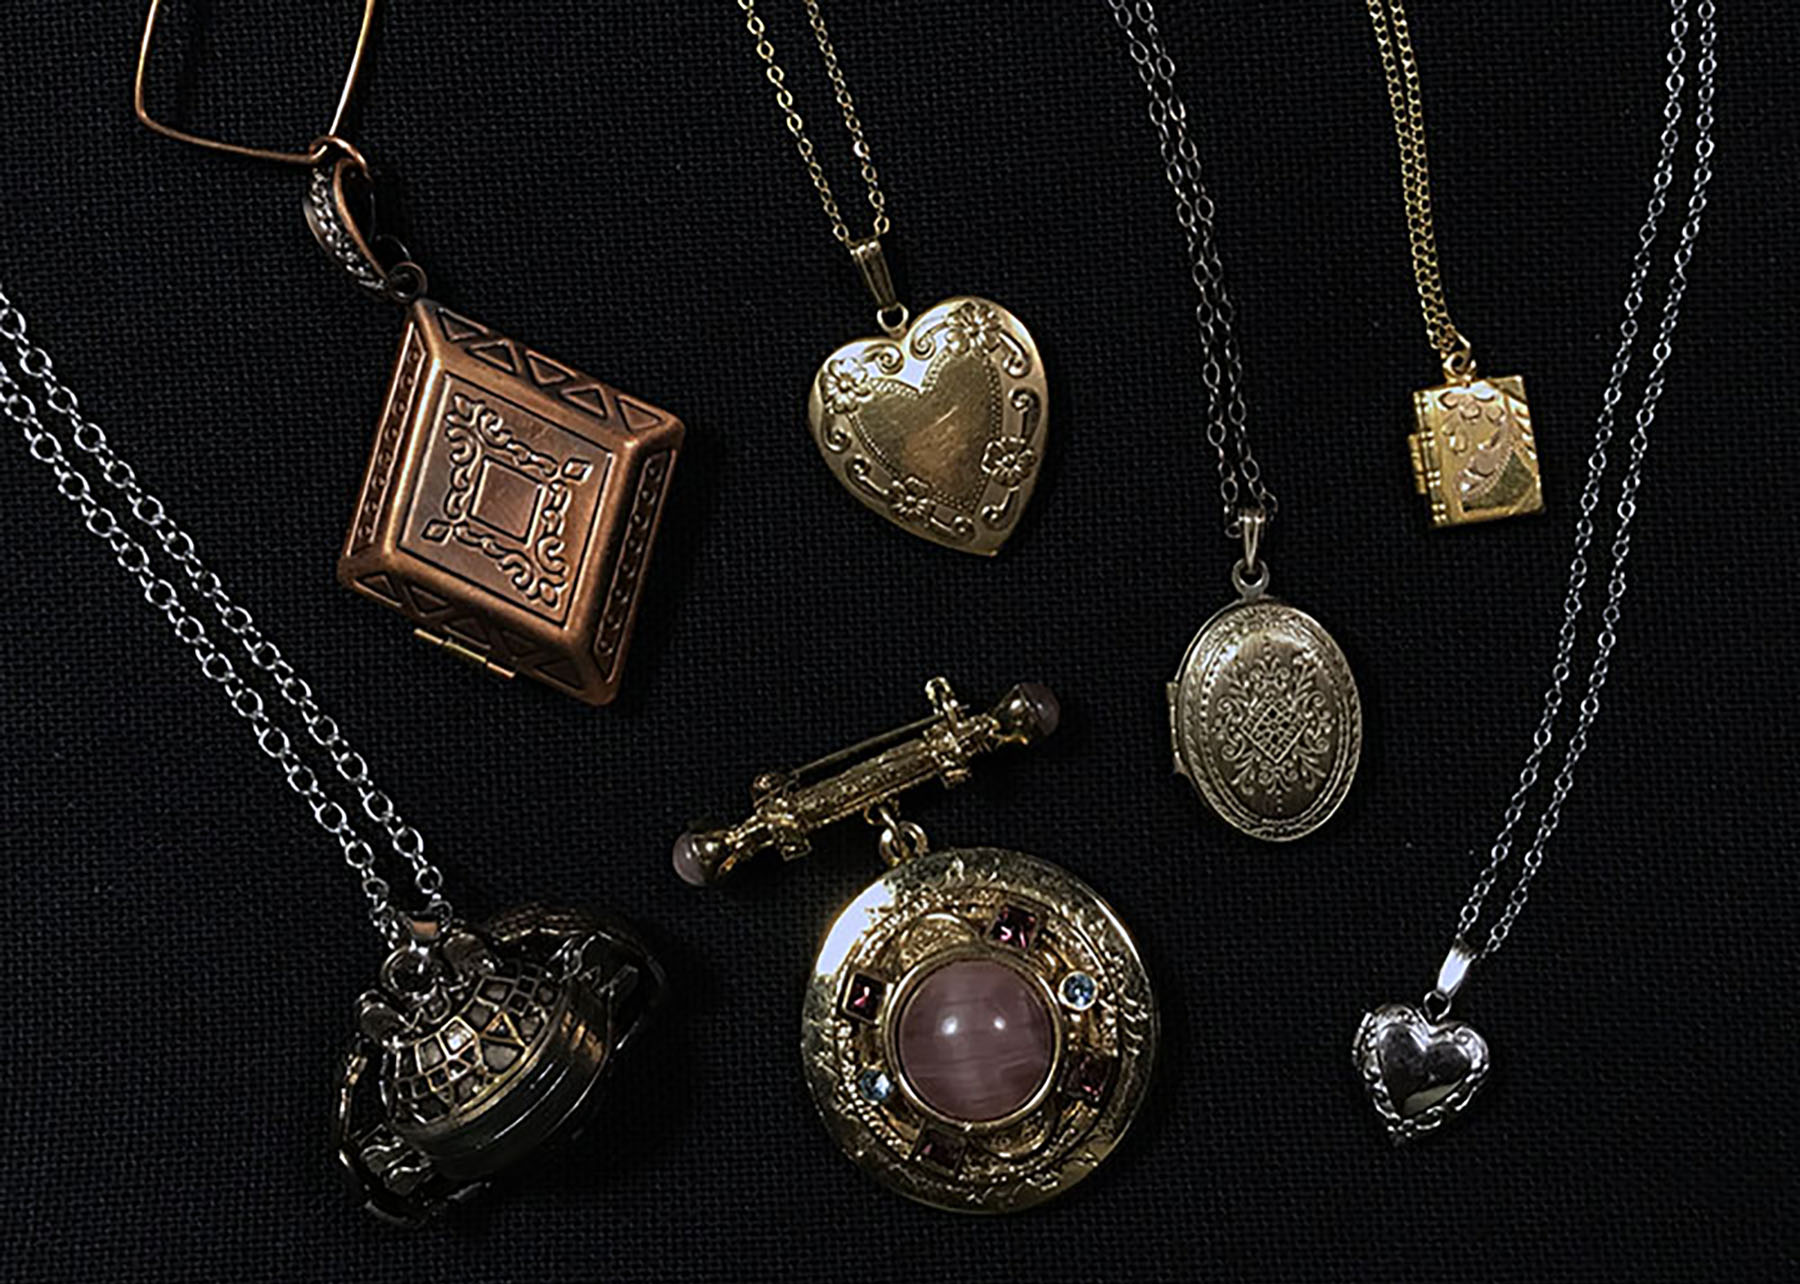 PHOTO LOCKETS – A TIMELESS GIFT